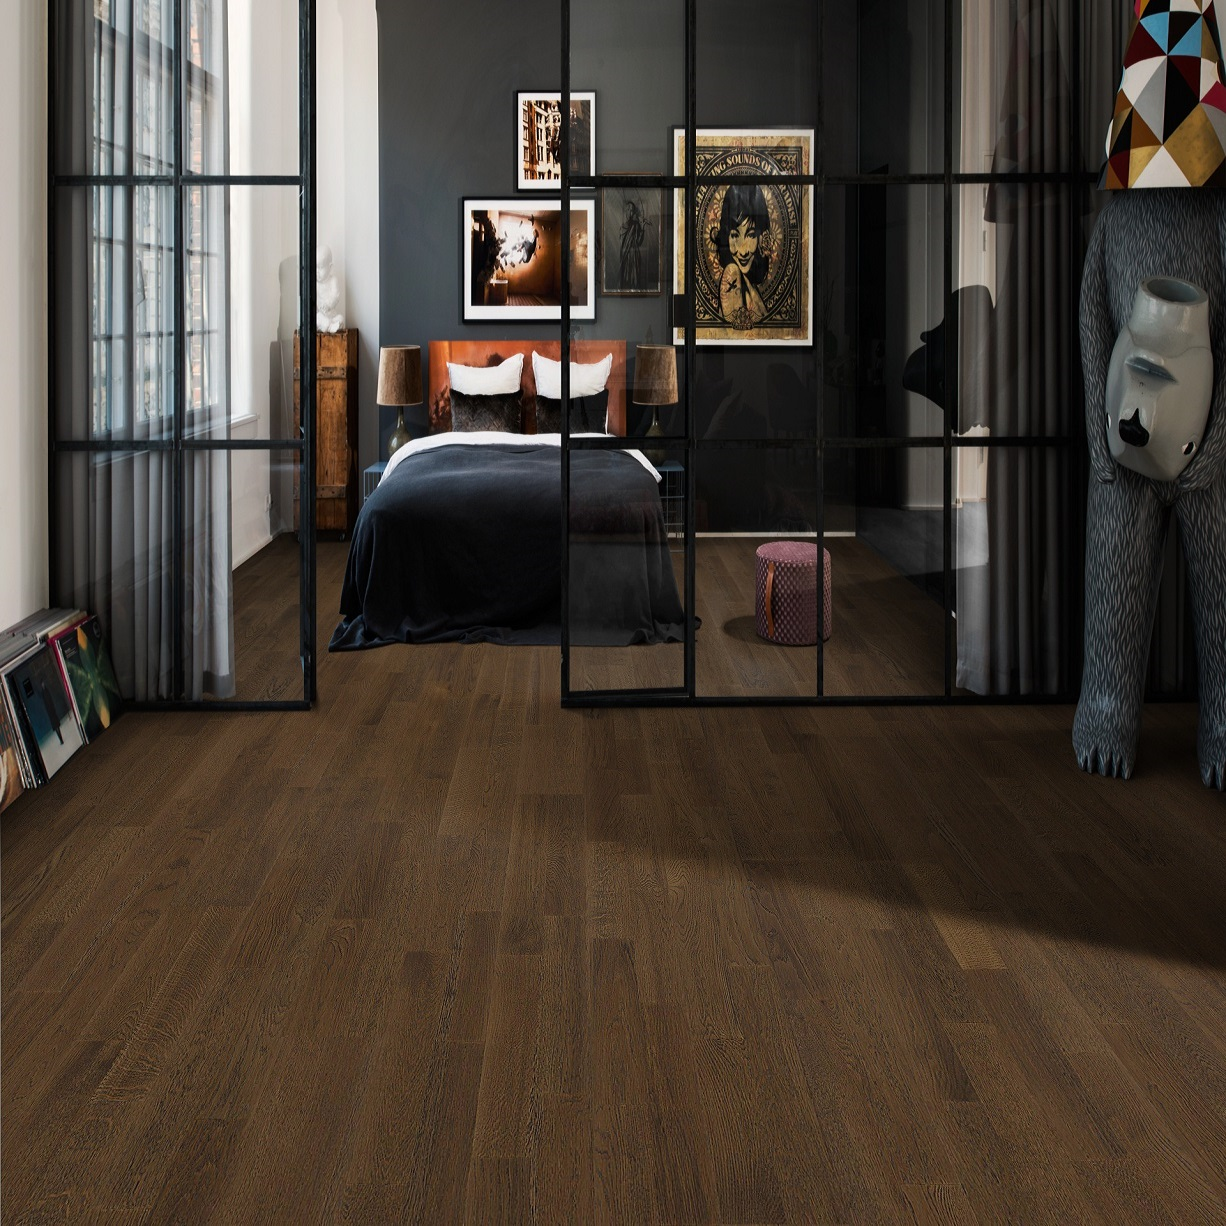 kahrs harmony oak bean engineered hardwood flooring. Black Bedroom Furniture Sets. Home Design Ideas